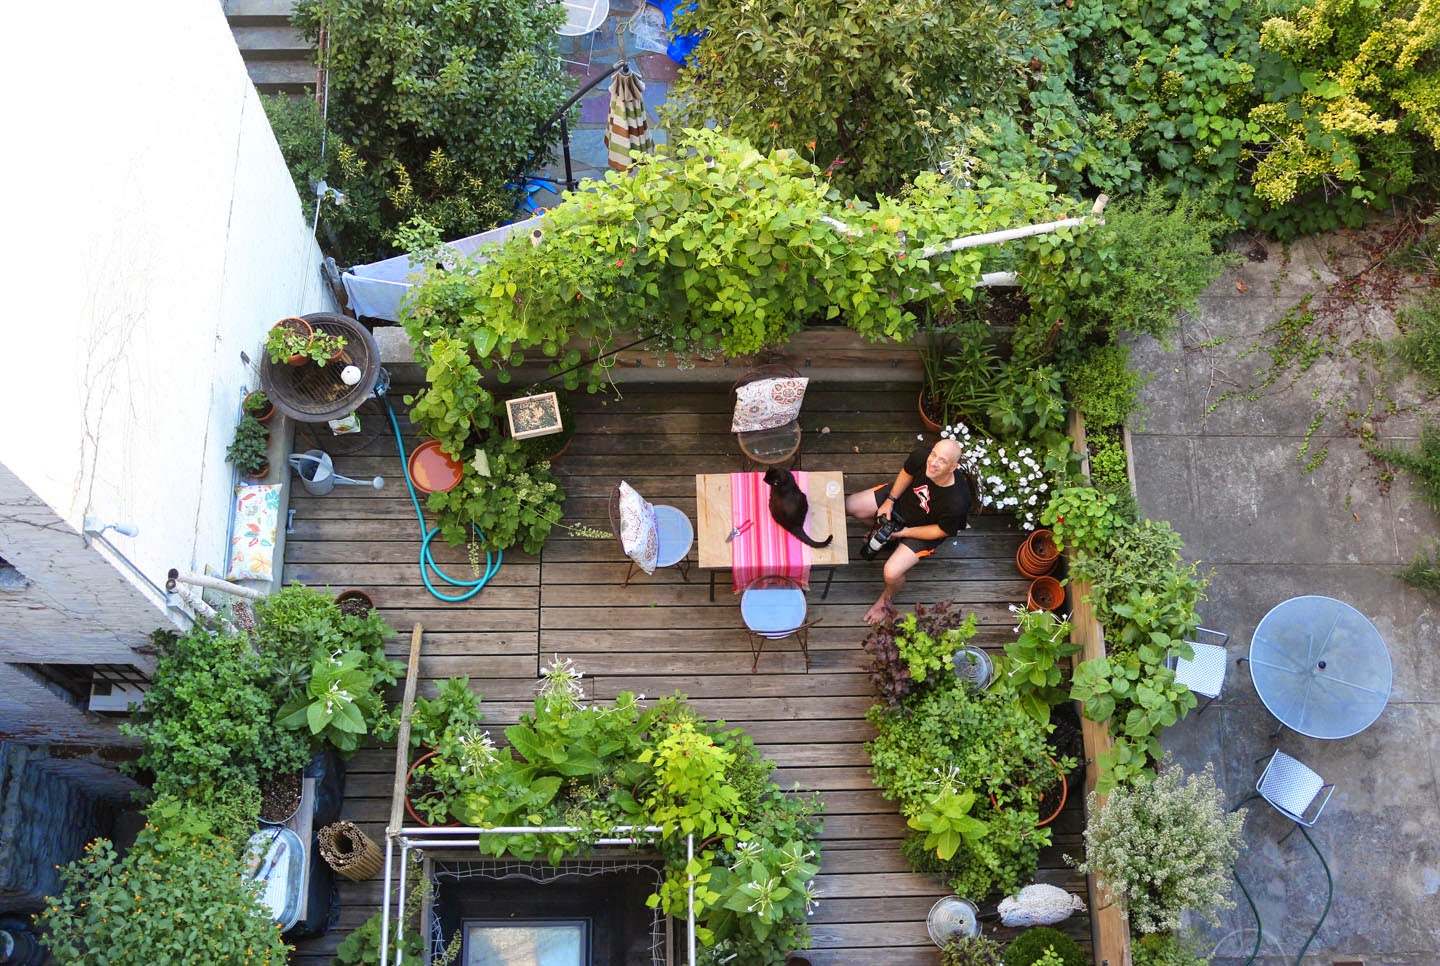 Am nager un petit potager sur son balcon 20 id es for Balcon in english